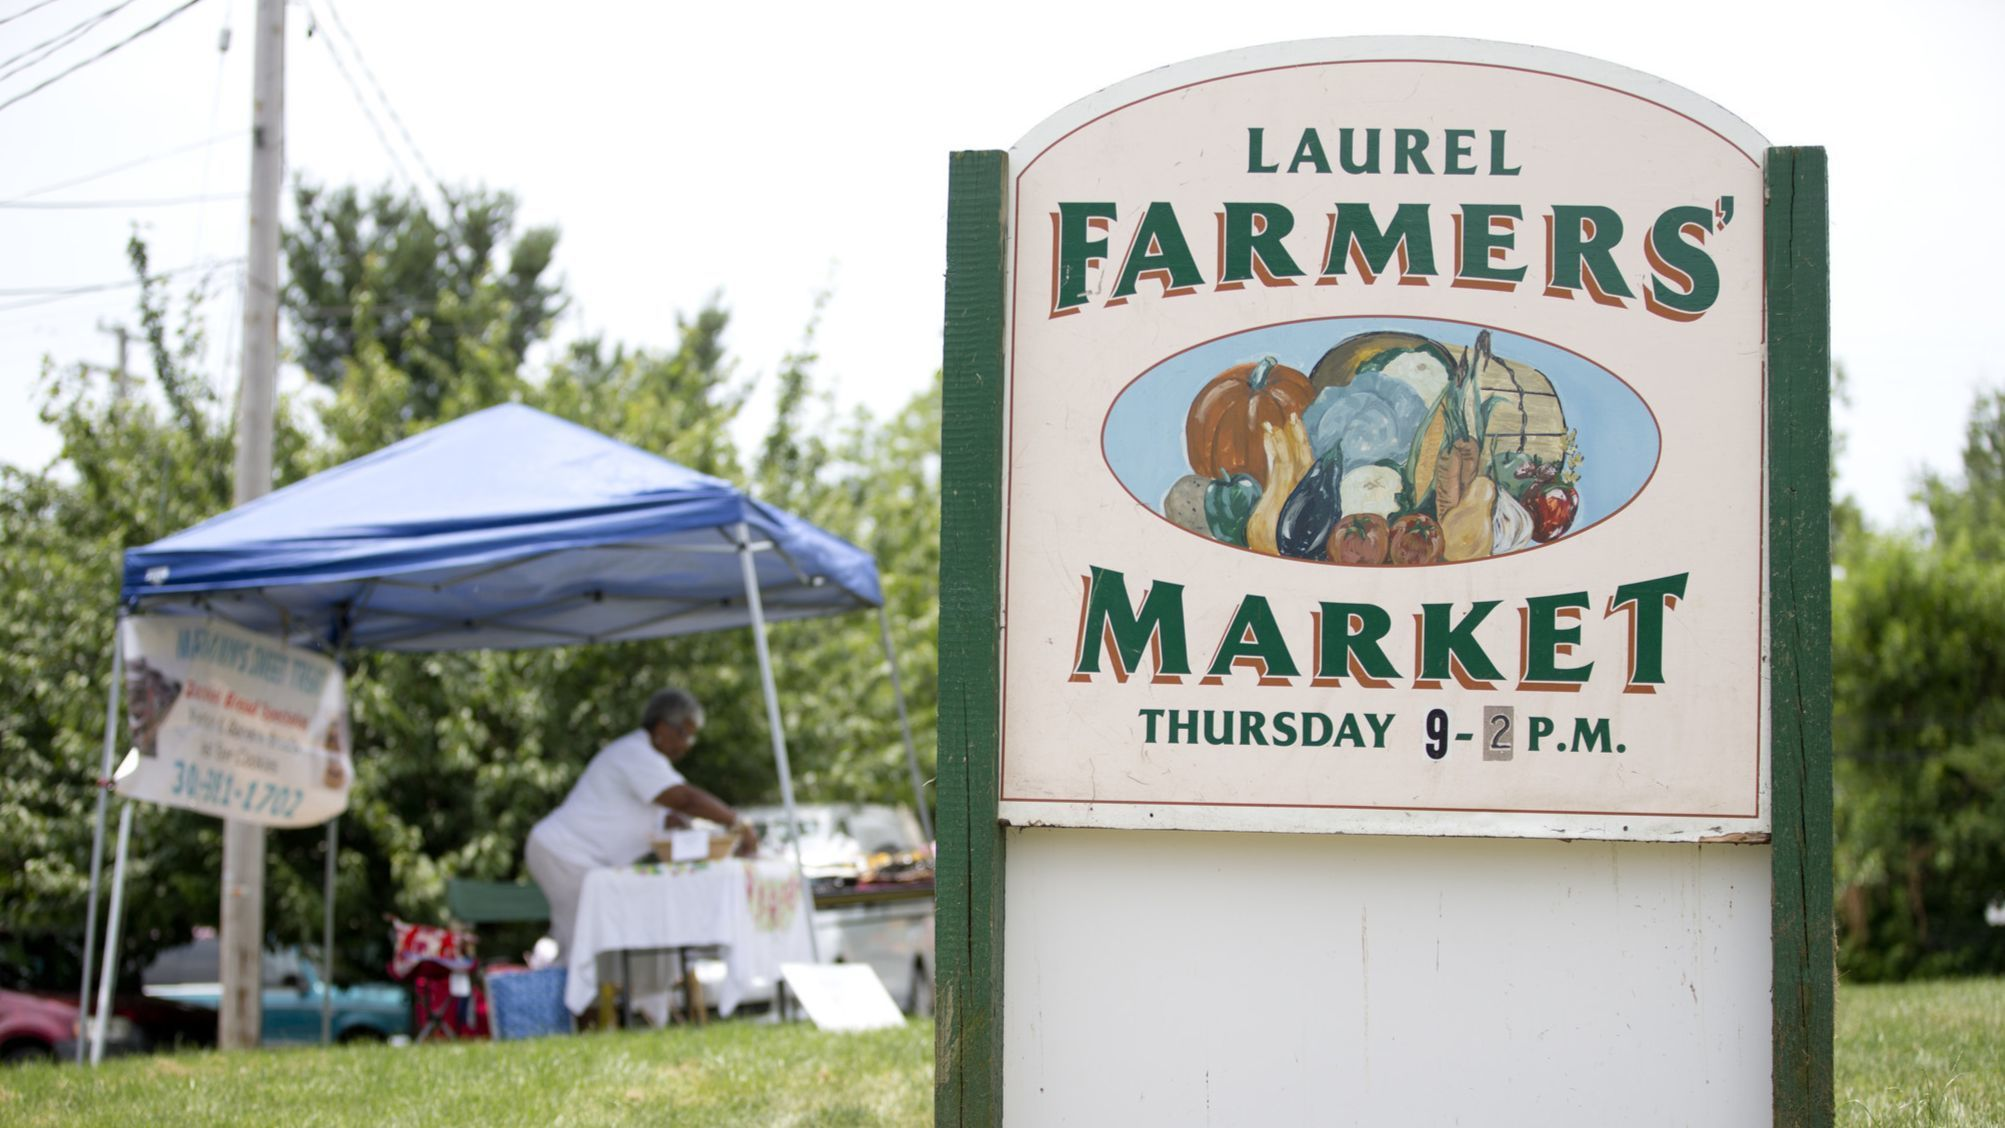 Low attendance, lack of support kills weekly Laurel farmers market